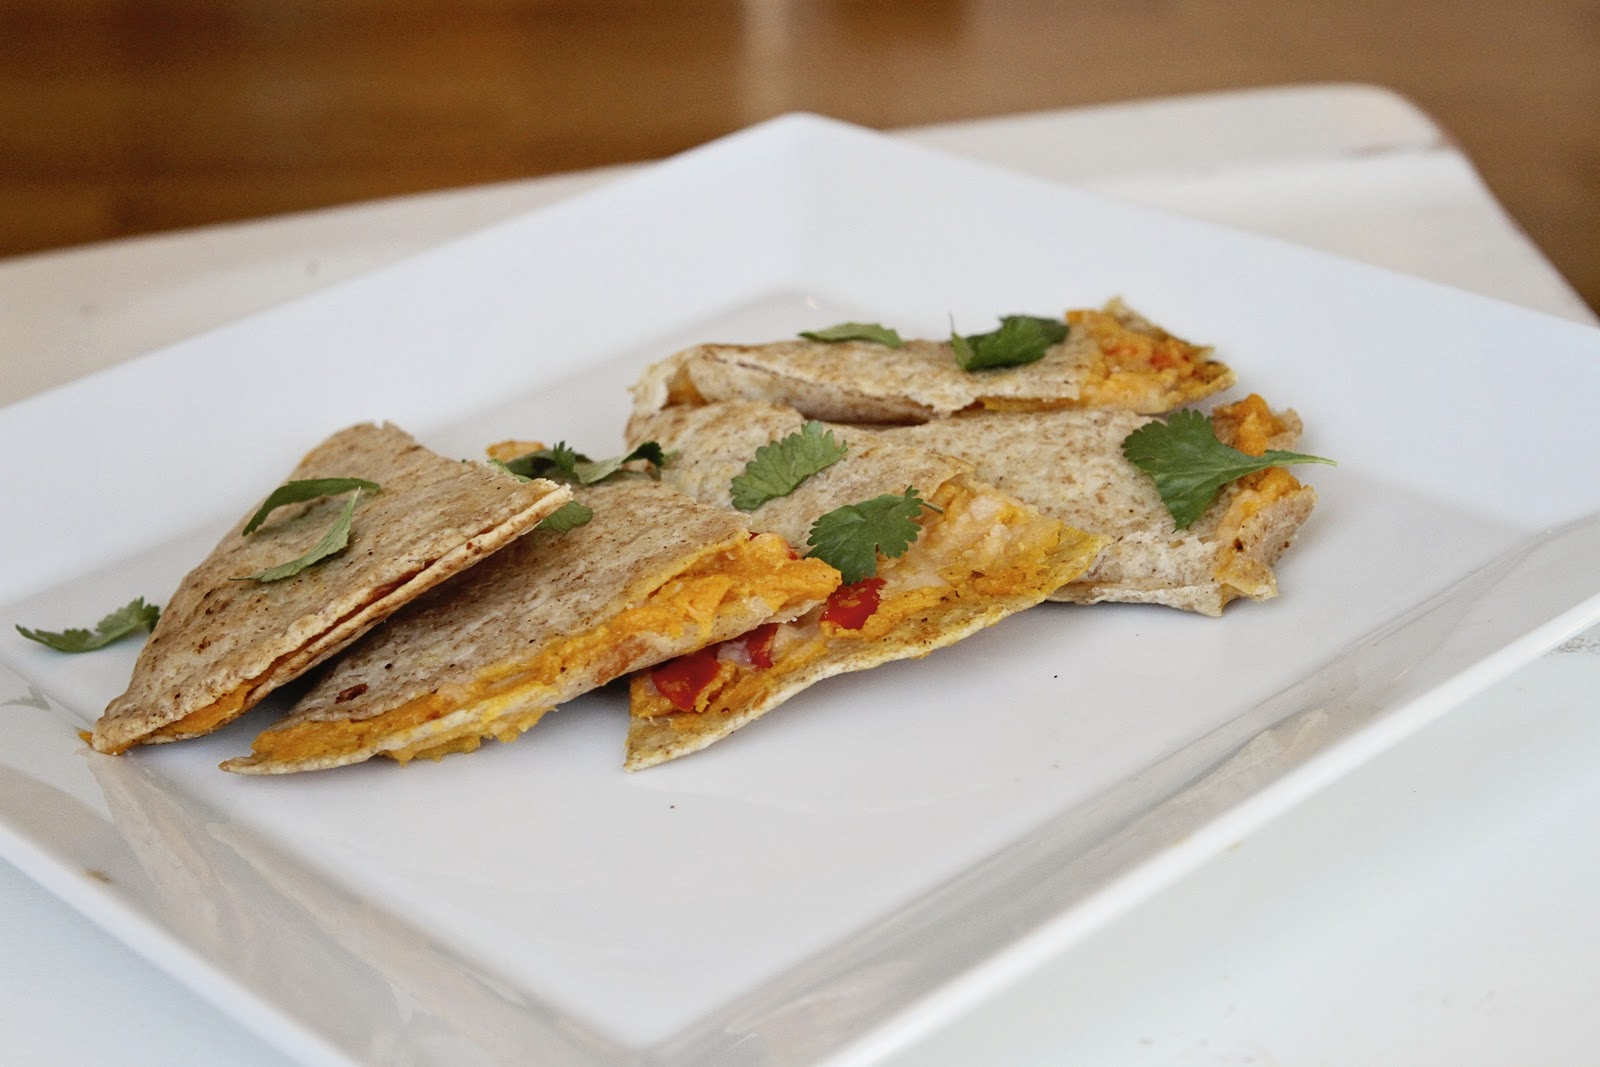 ... at Sunset: Butternut Squash, Red Pepper, & Jack cheese quesadilla